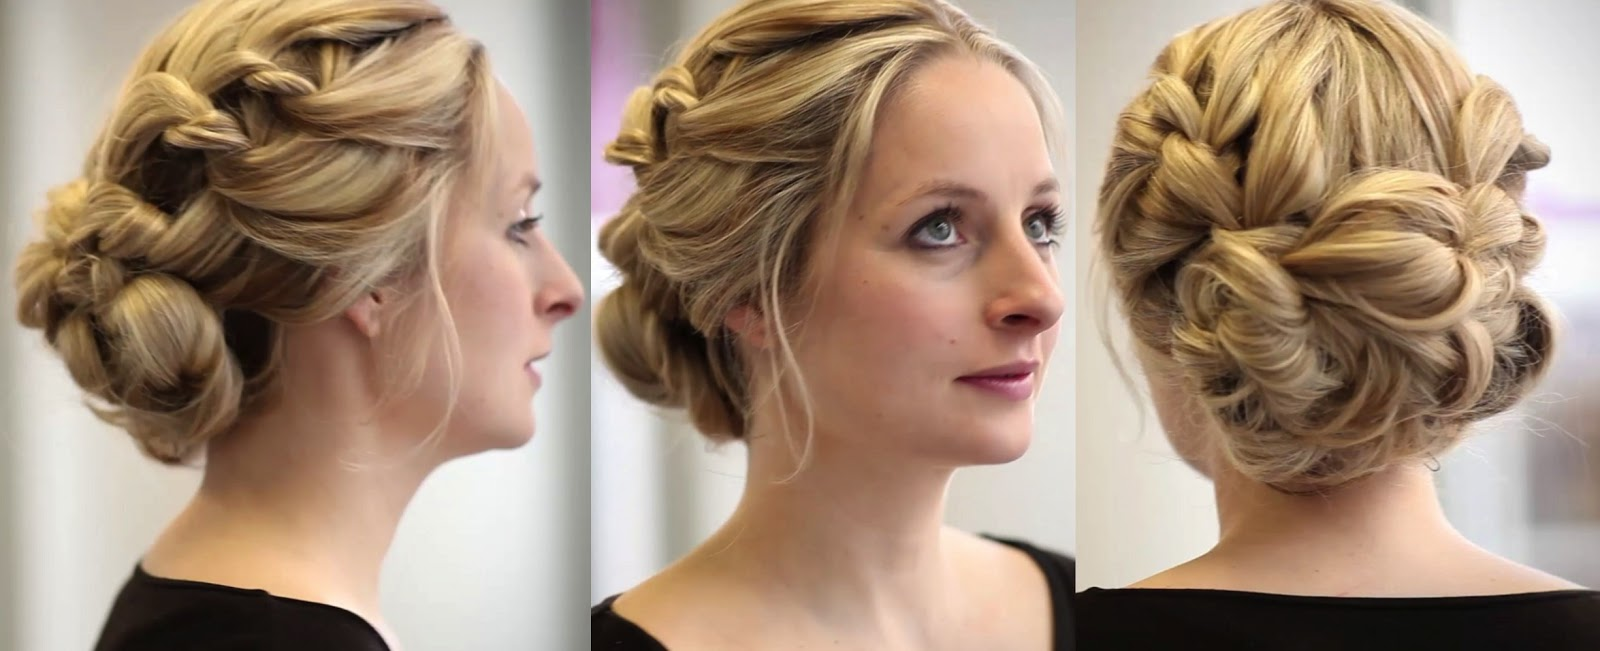 Whimsical Bridesmaid Hairstyles with ghd